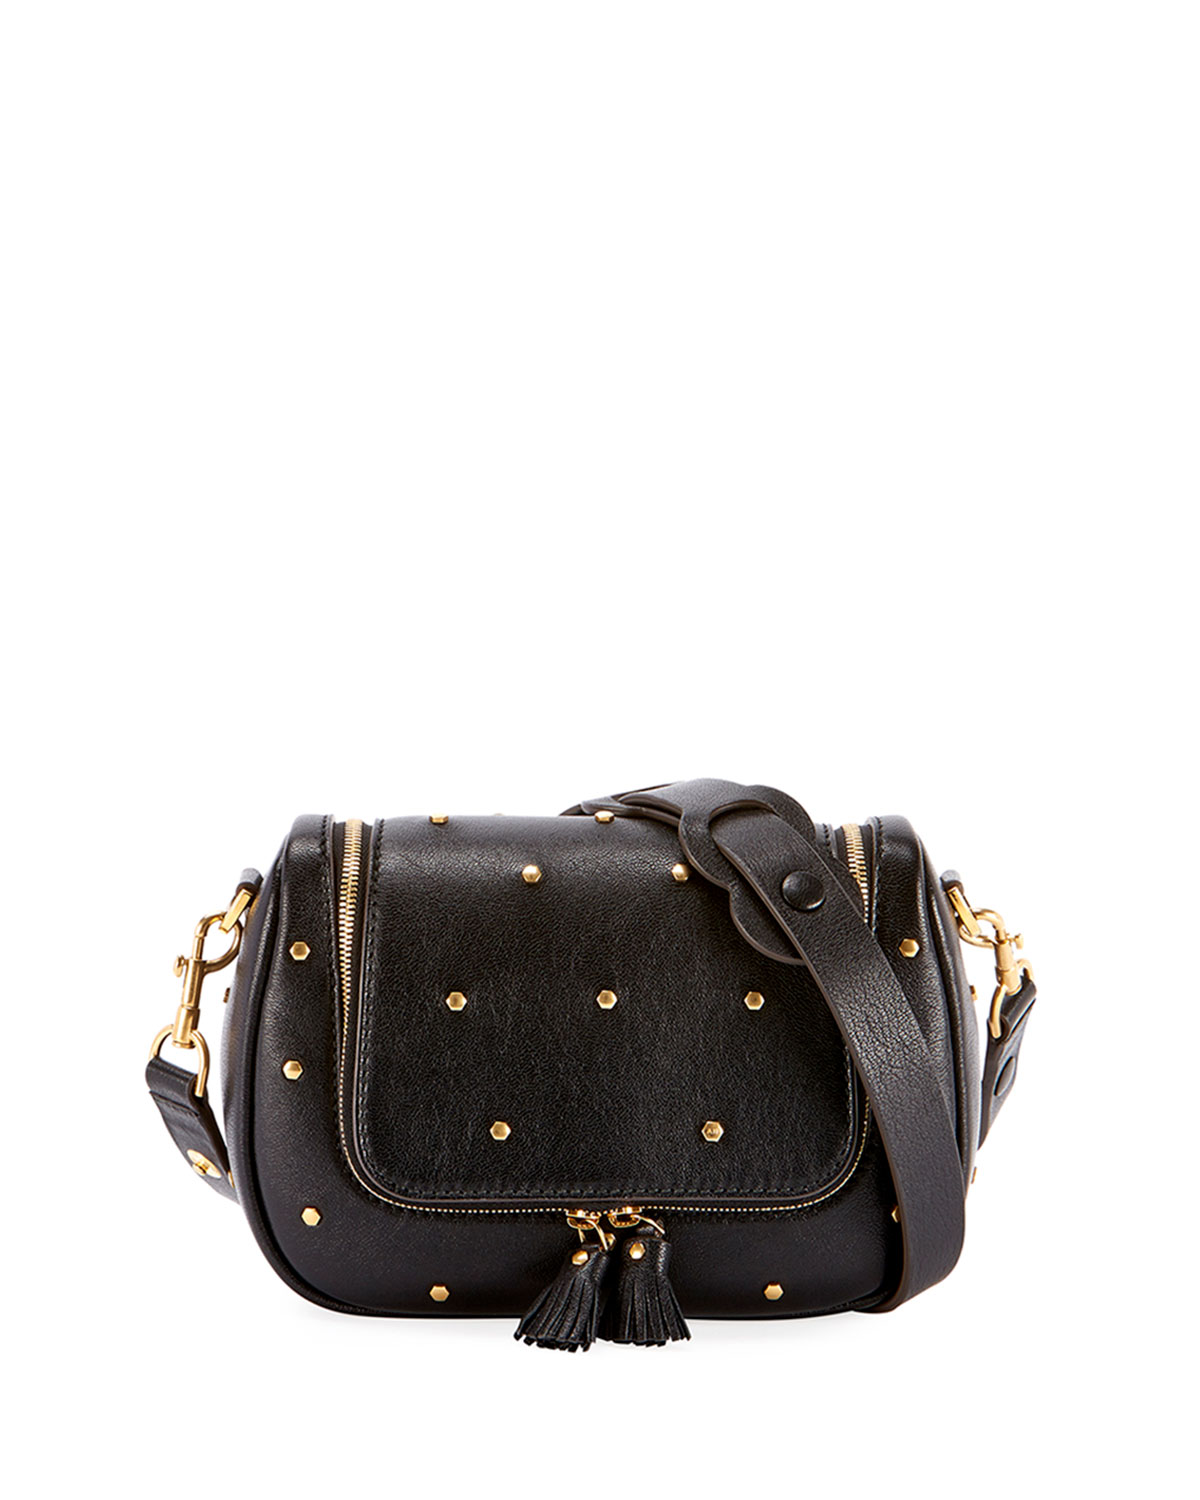 Vere Small Soft Satchel Bag in Black